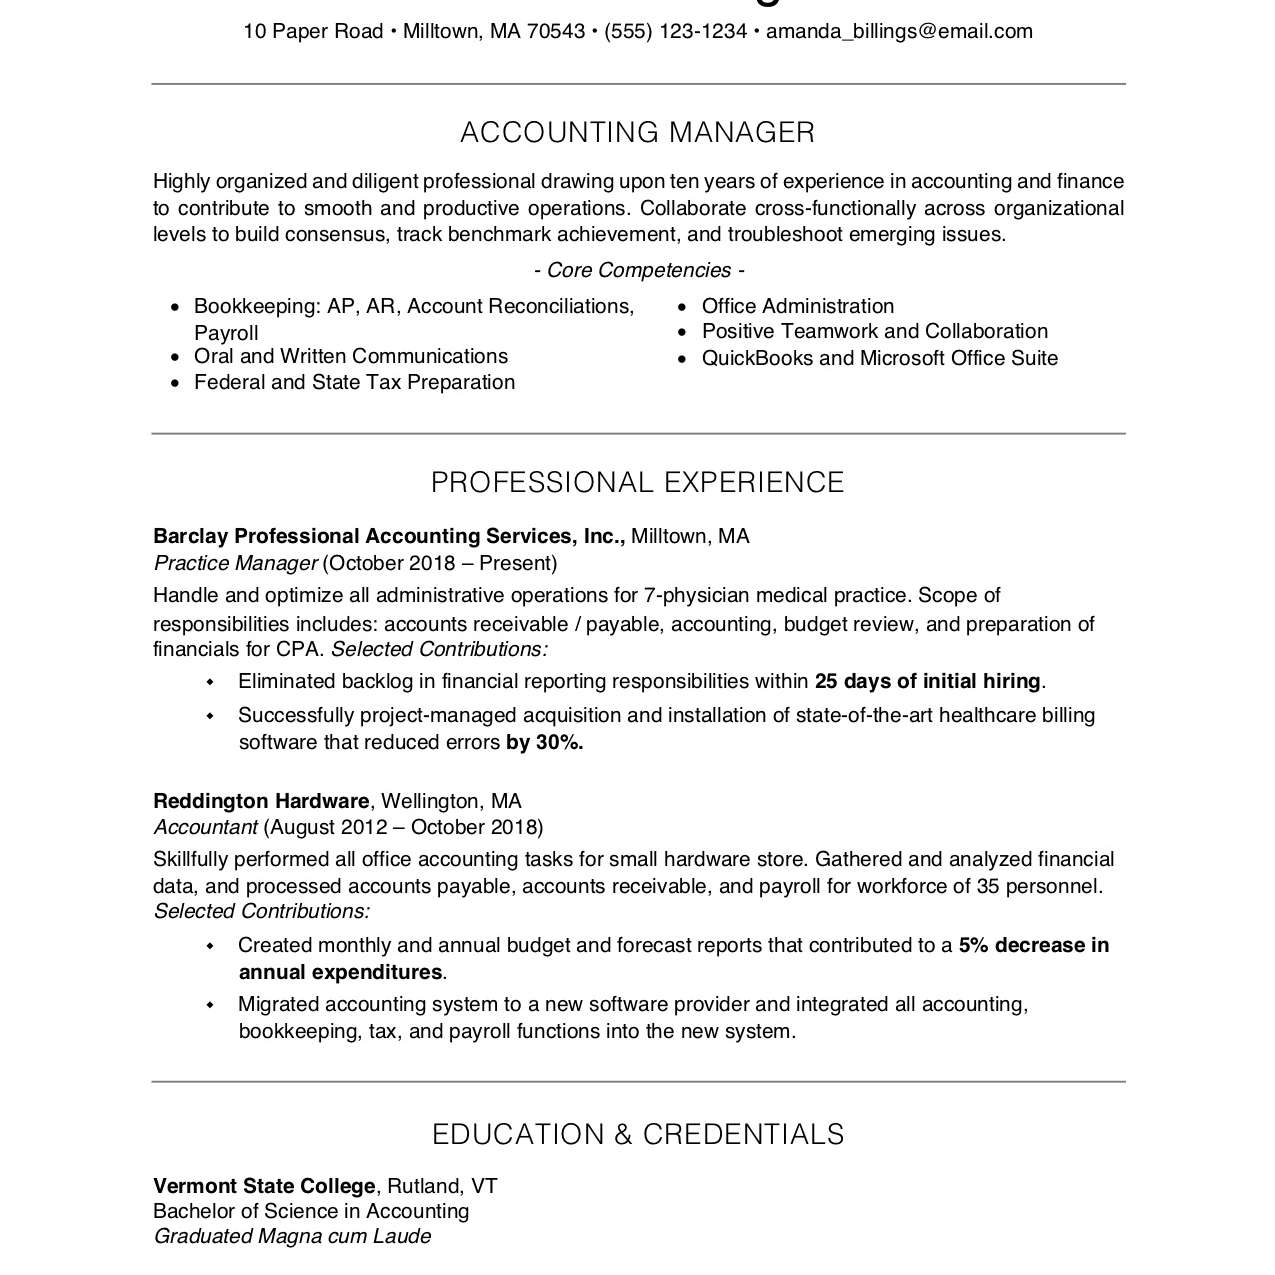 free professional resume examples and writing tips template with core competencies Resume Resume Template With Core Competencies